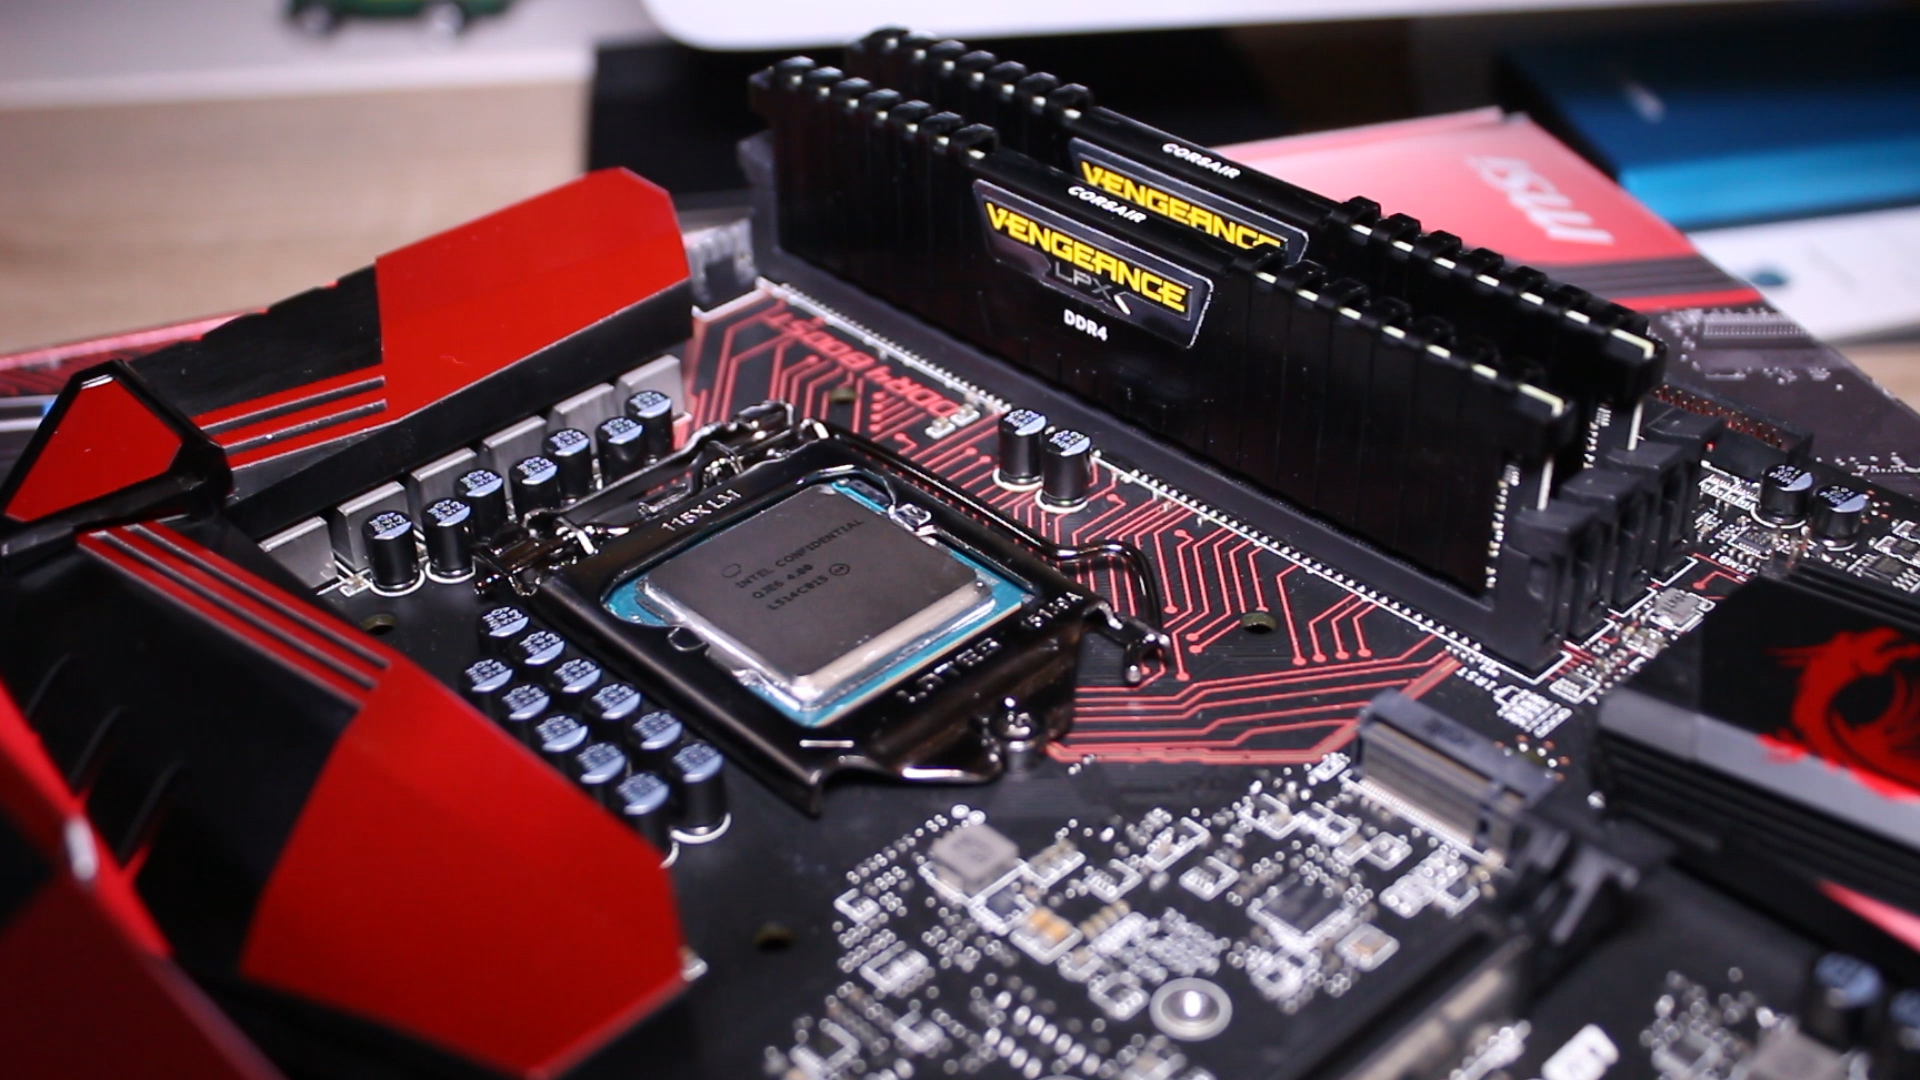 The world leader in motherboard design - MSI USA